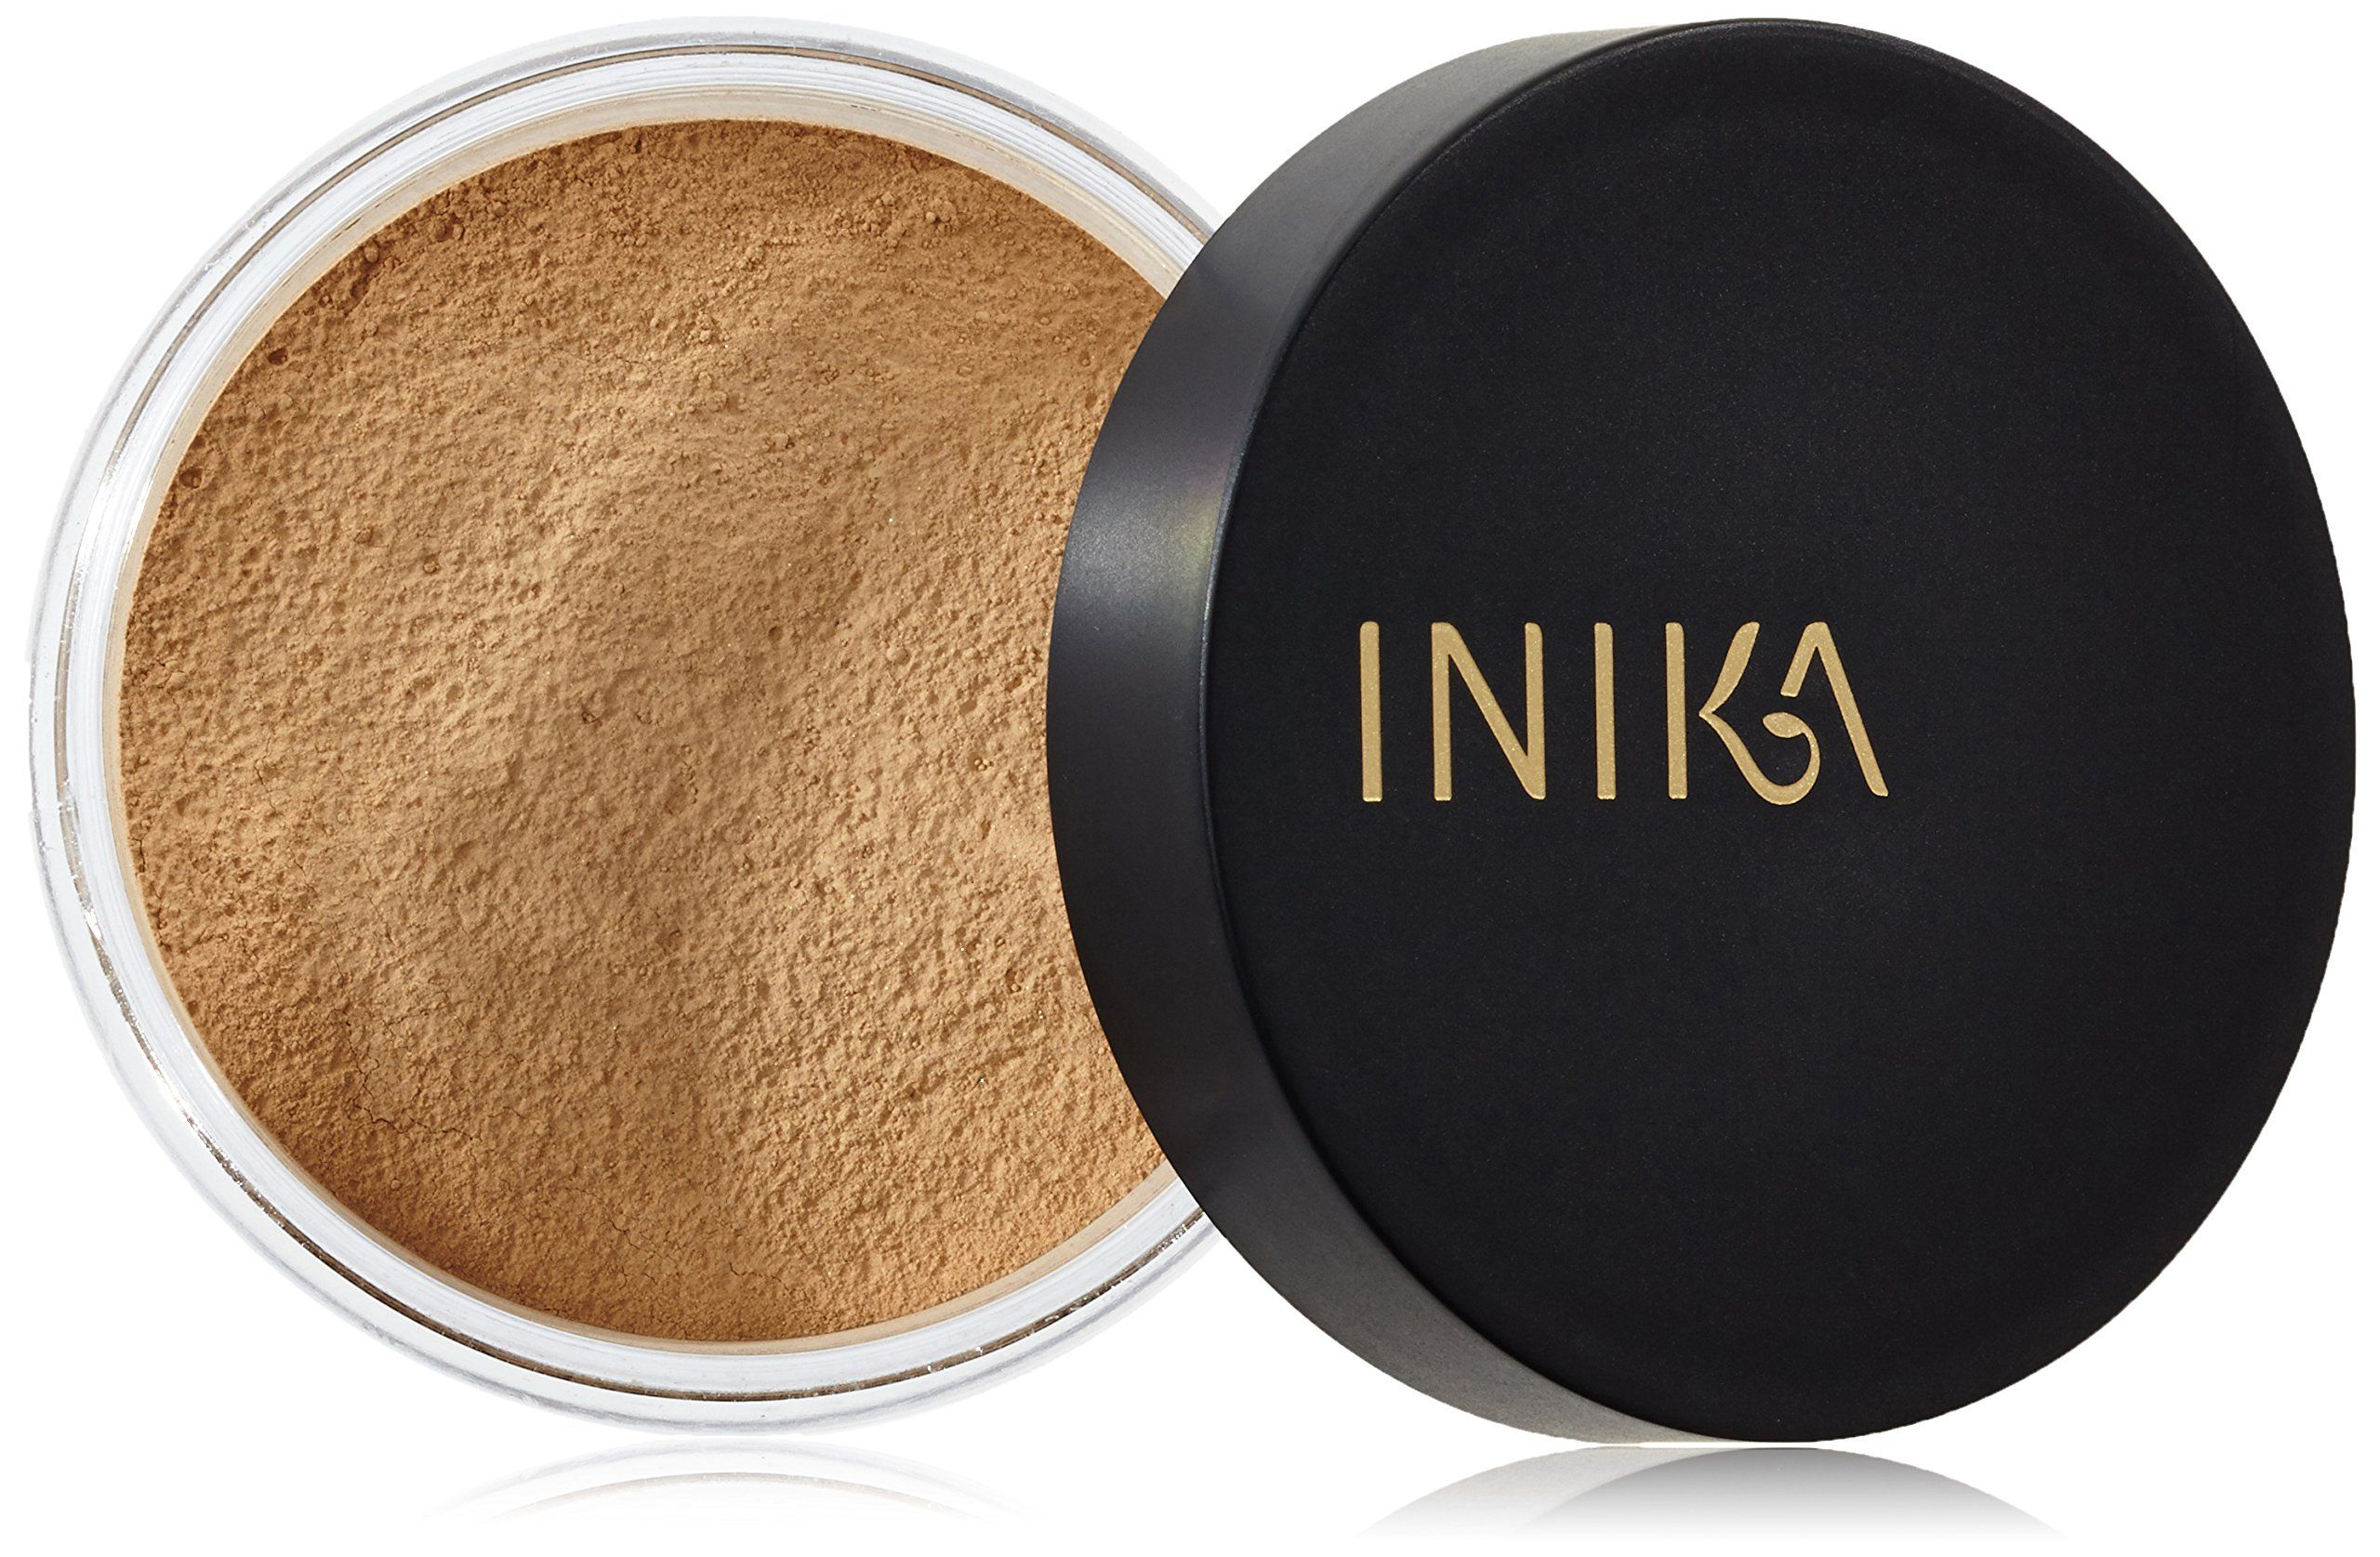 INIKA Mineral Foundation Powder, Inspiration Amazon.co.uk